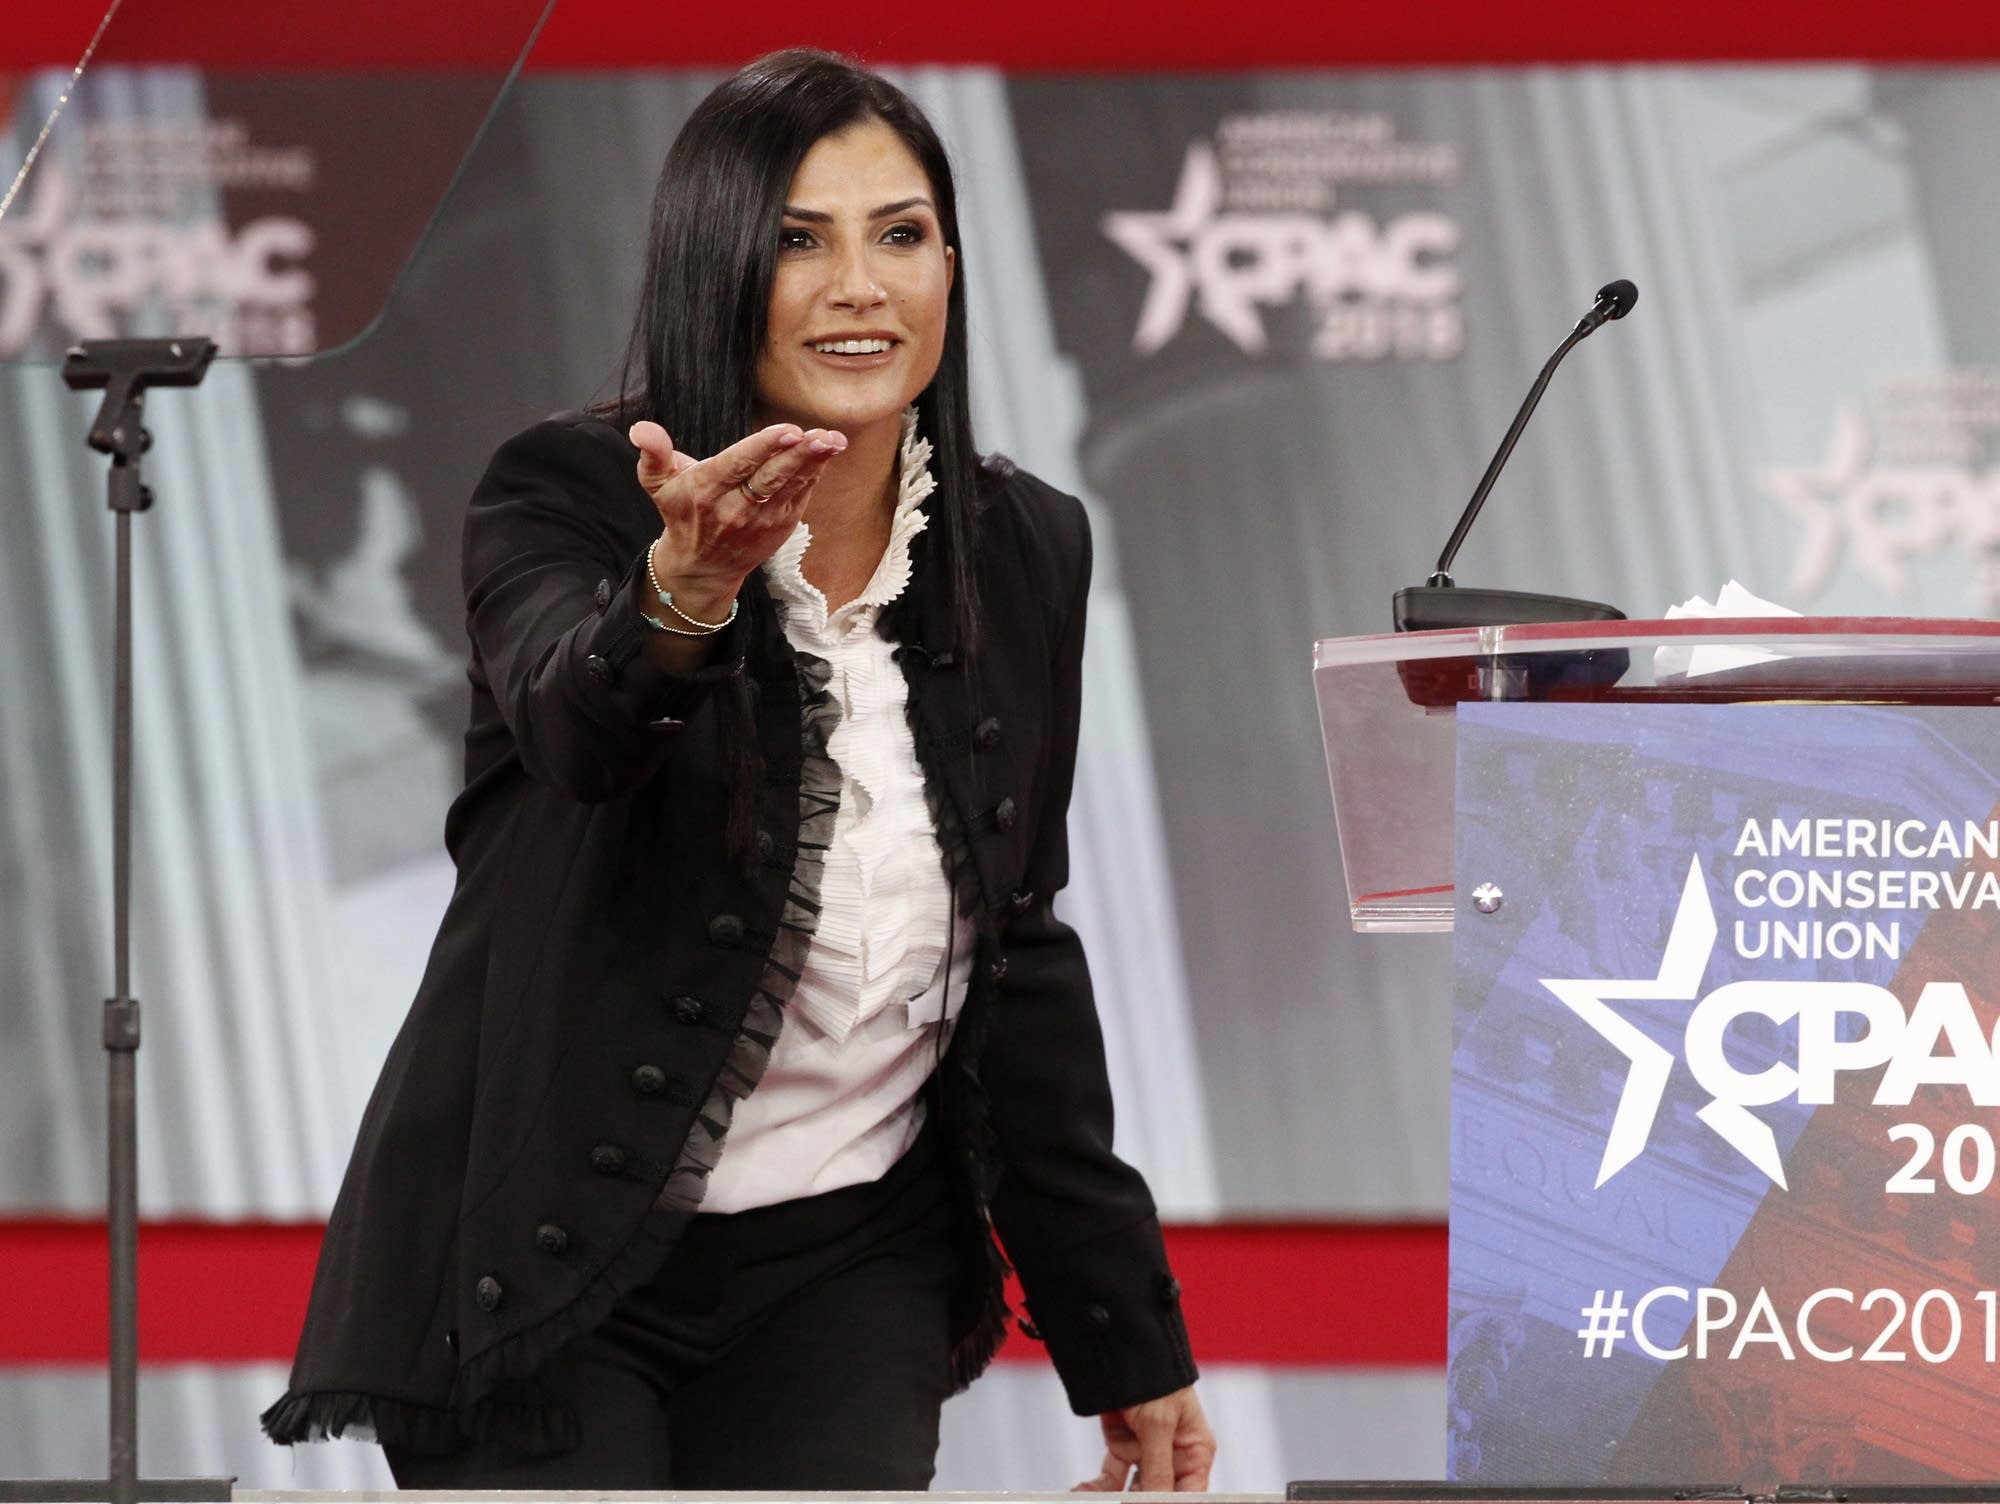 Who Is Dana Loesch? The Story Behind the Face of the NRA